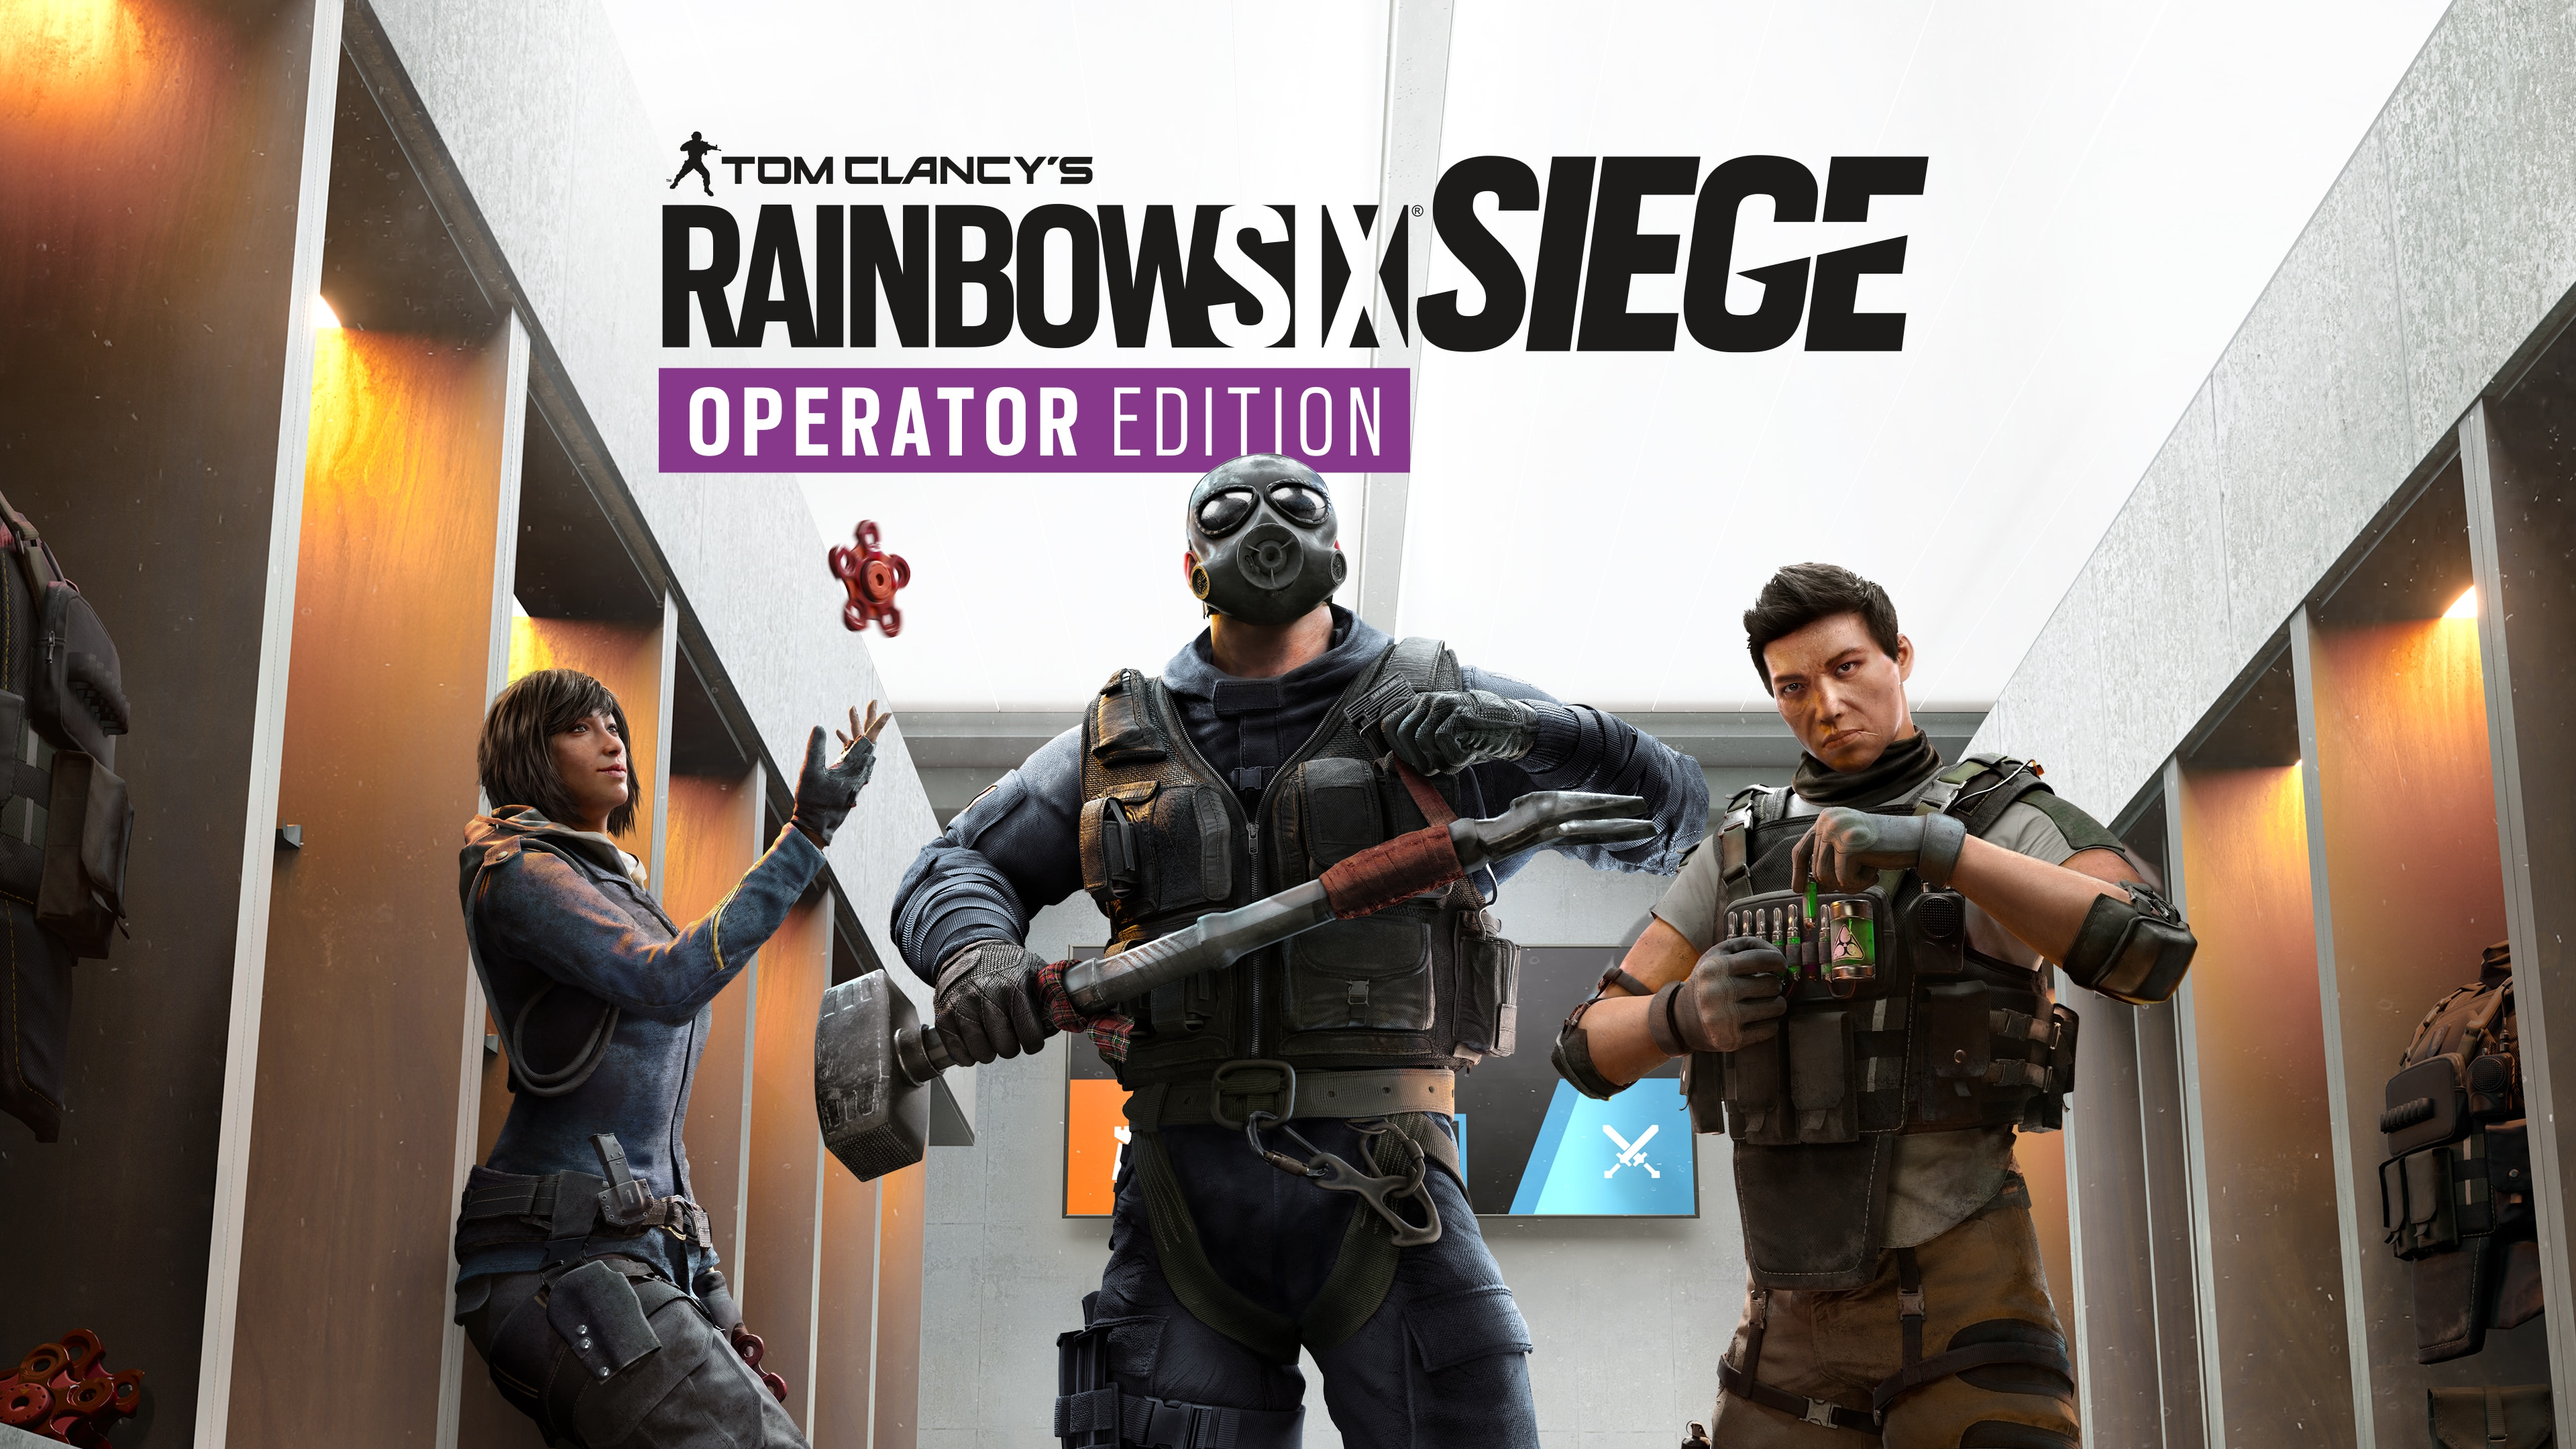 Tom Clancy's Rainbow Six® Siege Operator Edition